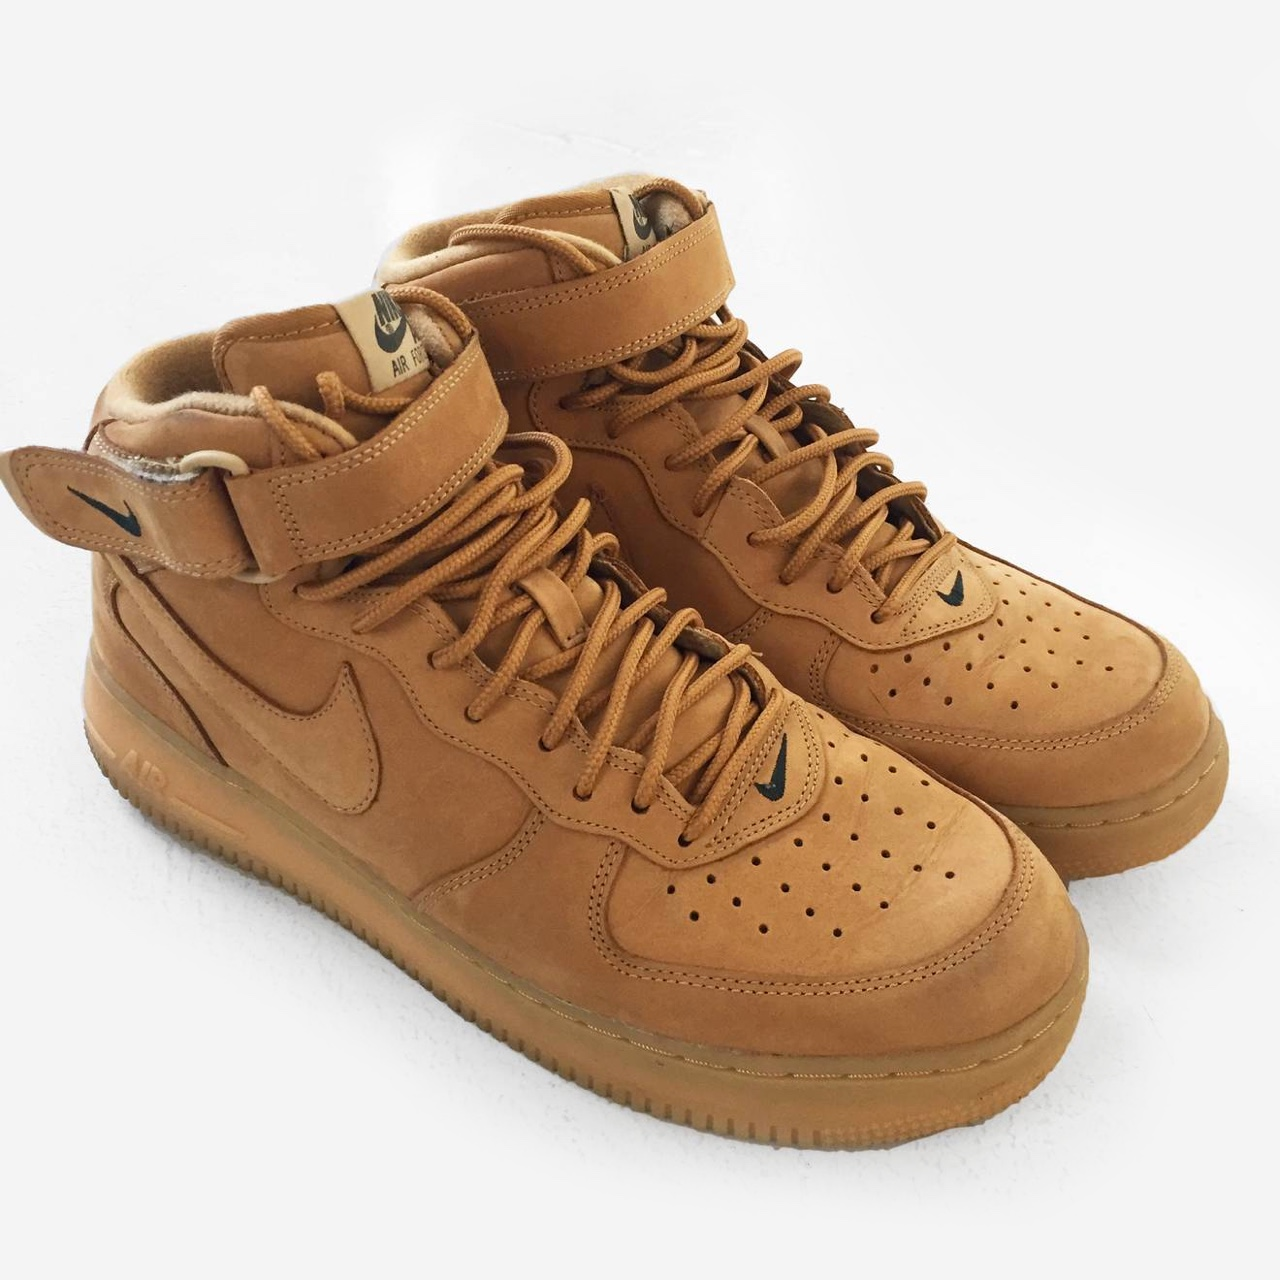 meet f73cb d54dc Nike Air Force 1 AF1 Mid Flax Wheat / Pre-owned /... - Depop